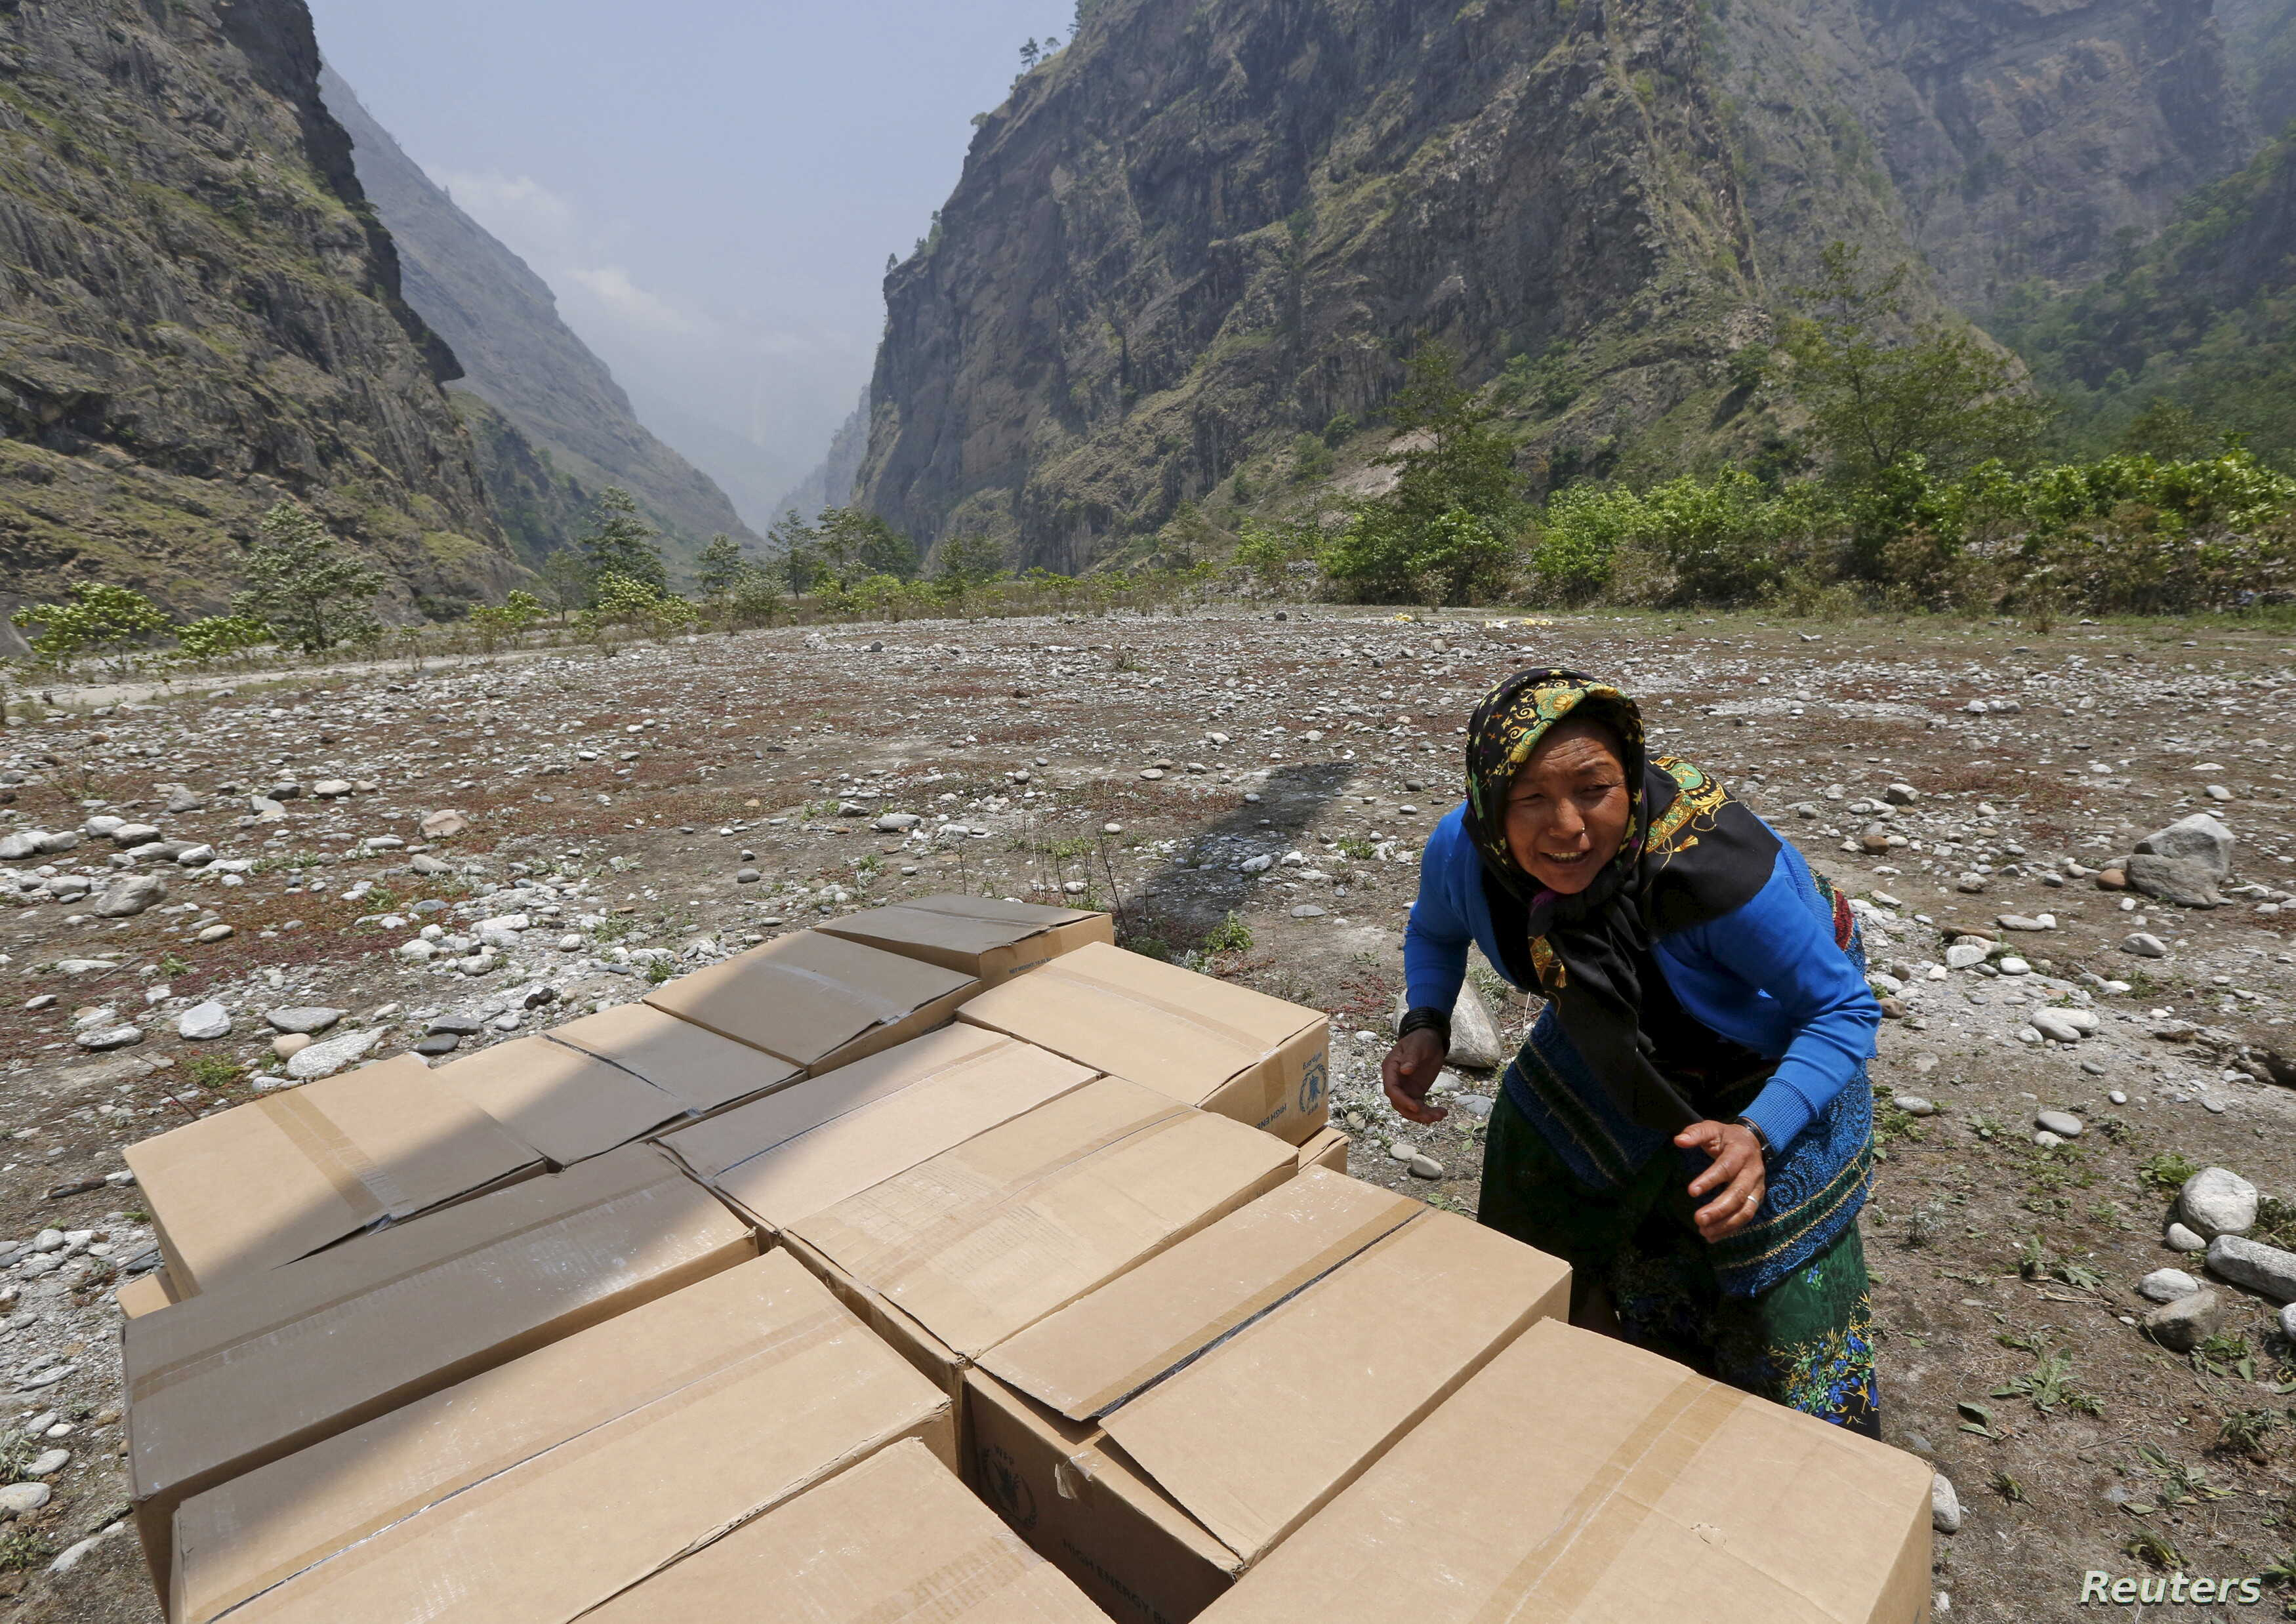 A woman helps unload emergency food supplies after the April 25 earthquake in Dovan, Nepal, May 8, 2015. REUTERS/Olivia Har